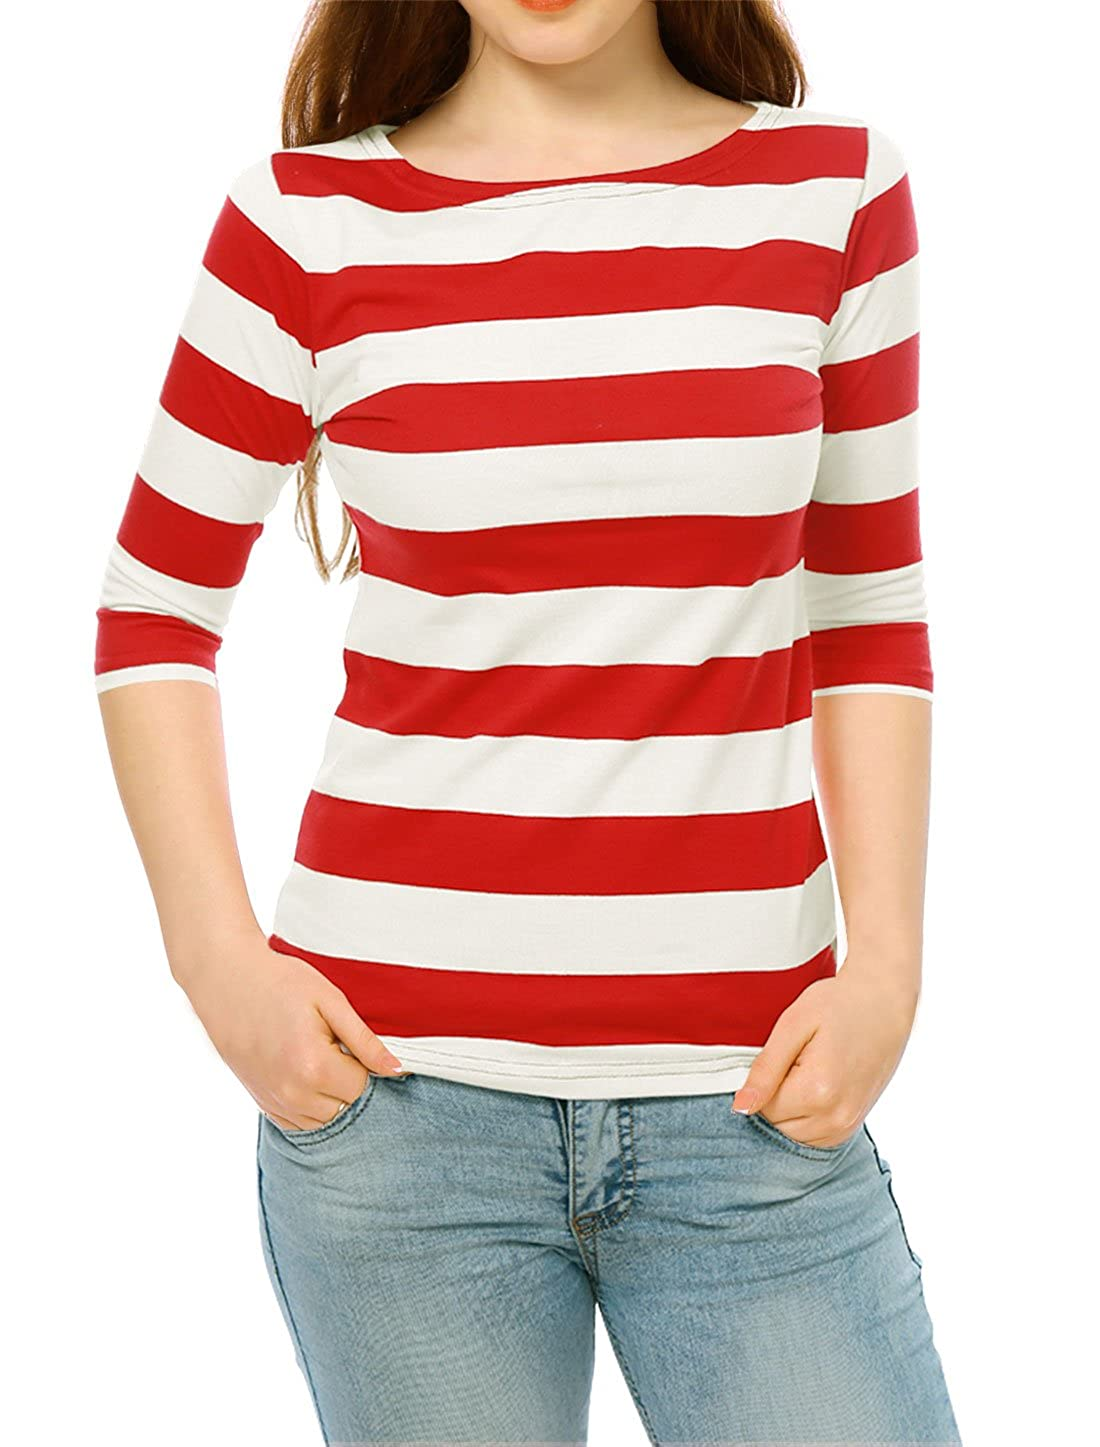 Sailor Dresses, Nautical Theme Dress, WW2 Dresses Allegra K Womens Elbow Sleeves Boat Neck Slim Fit Striped Tee $28.40 AT vintagedancer.com